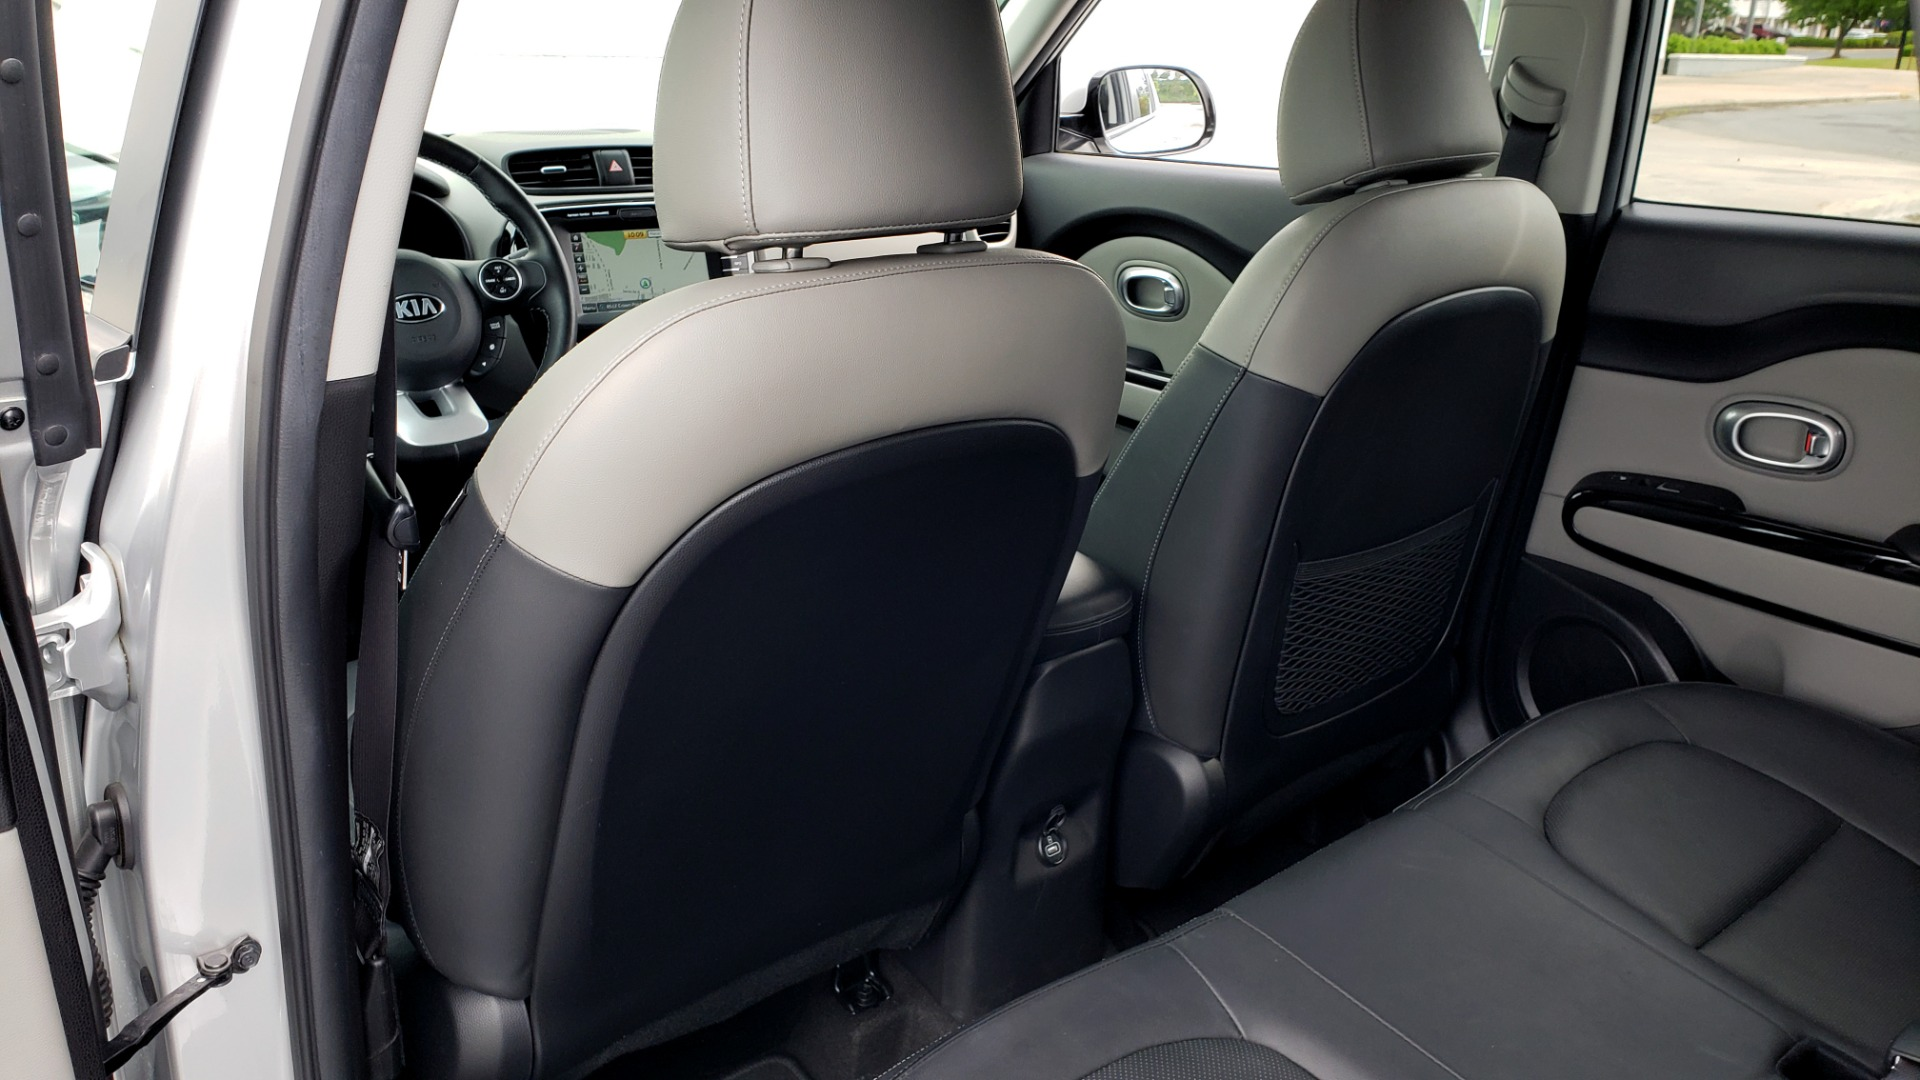 Used 2017 Kia SOUL PLUS / NAV / SUNROOF / LEATHER / HTD STS / REARVIEW for sale $16,995 at Formula Imports in Charlotte NC 28227 55